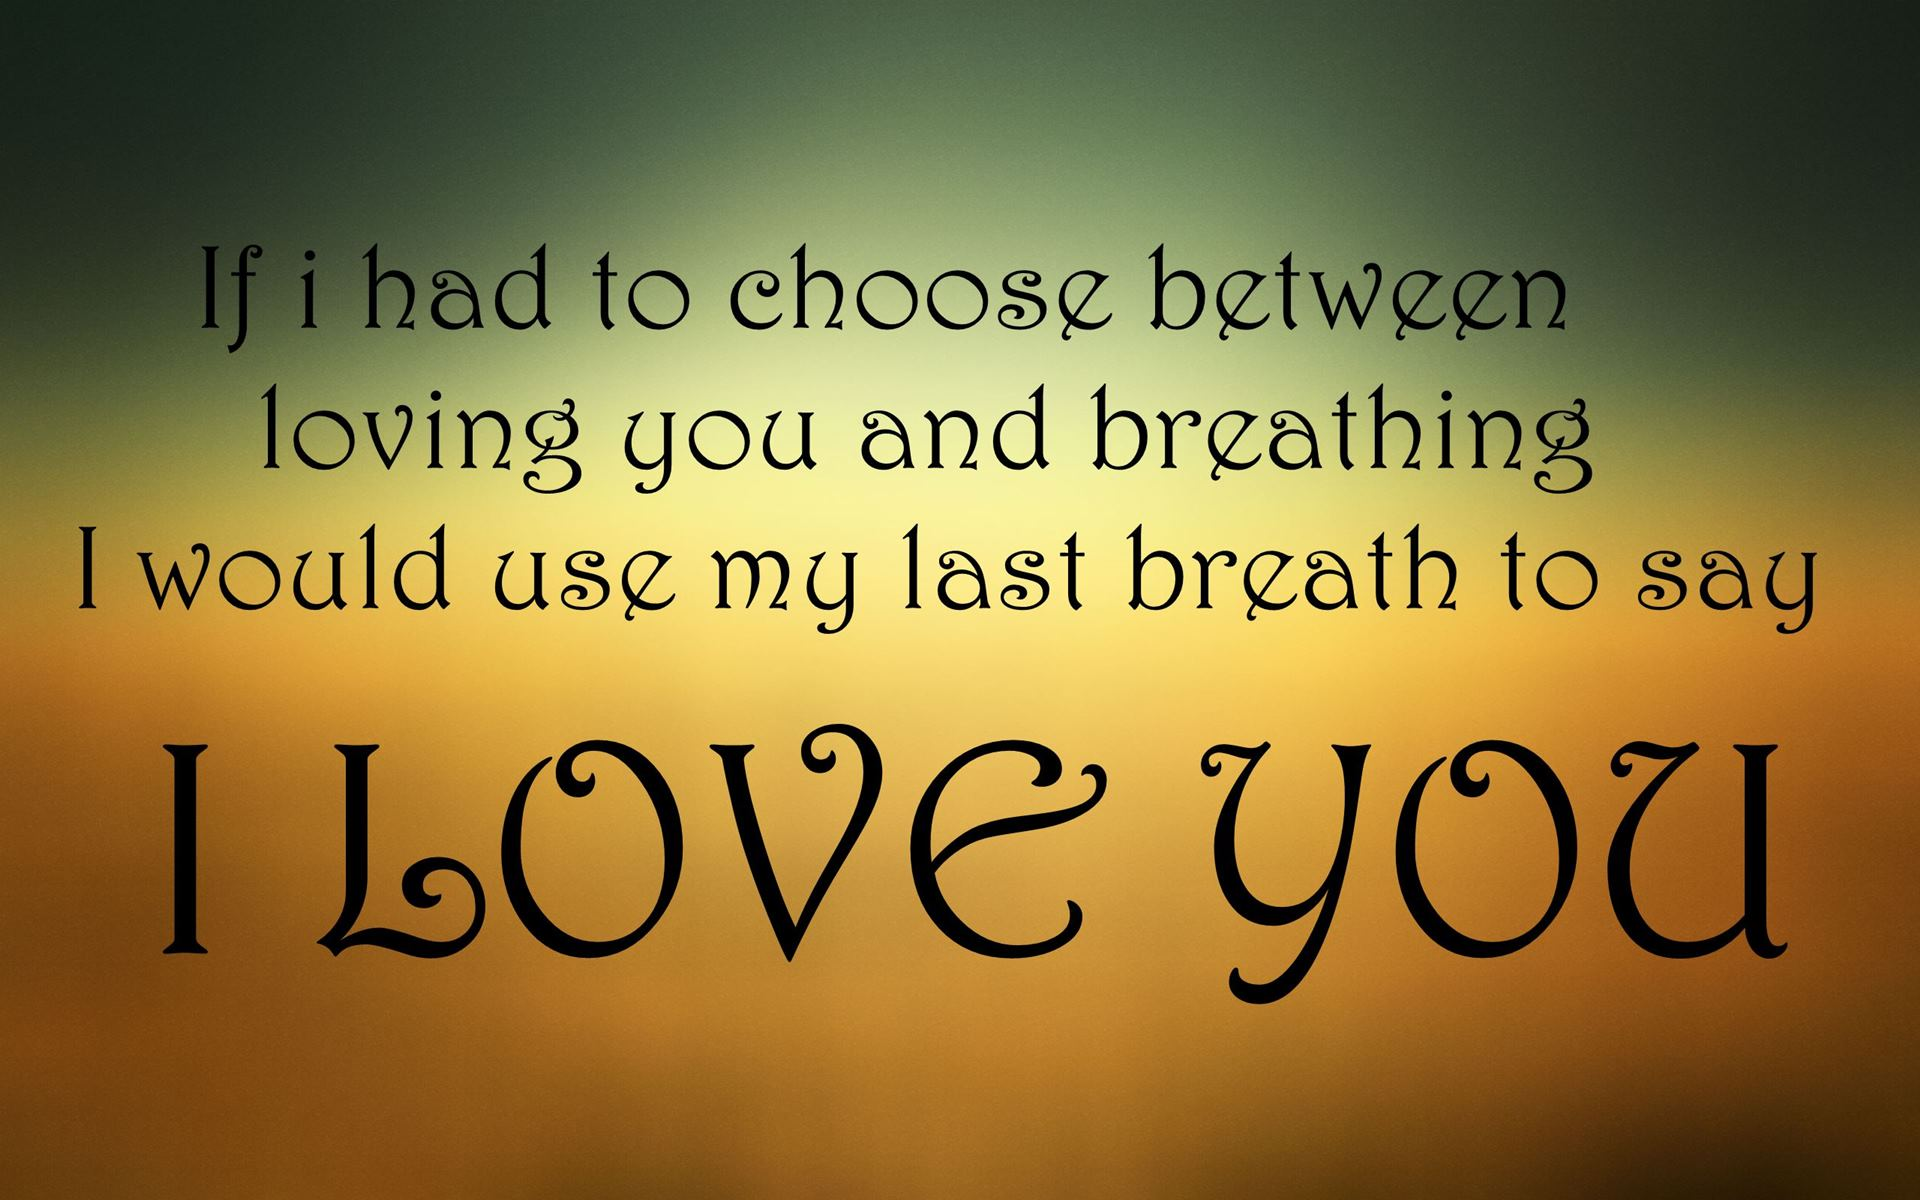 Love Qute Hd Wallpaper : Quotes About Love Wallpapers, Pictures, Images